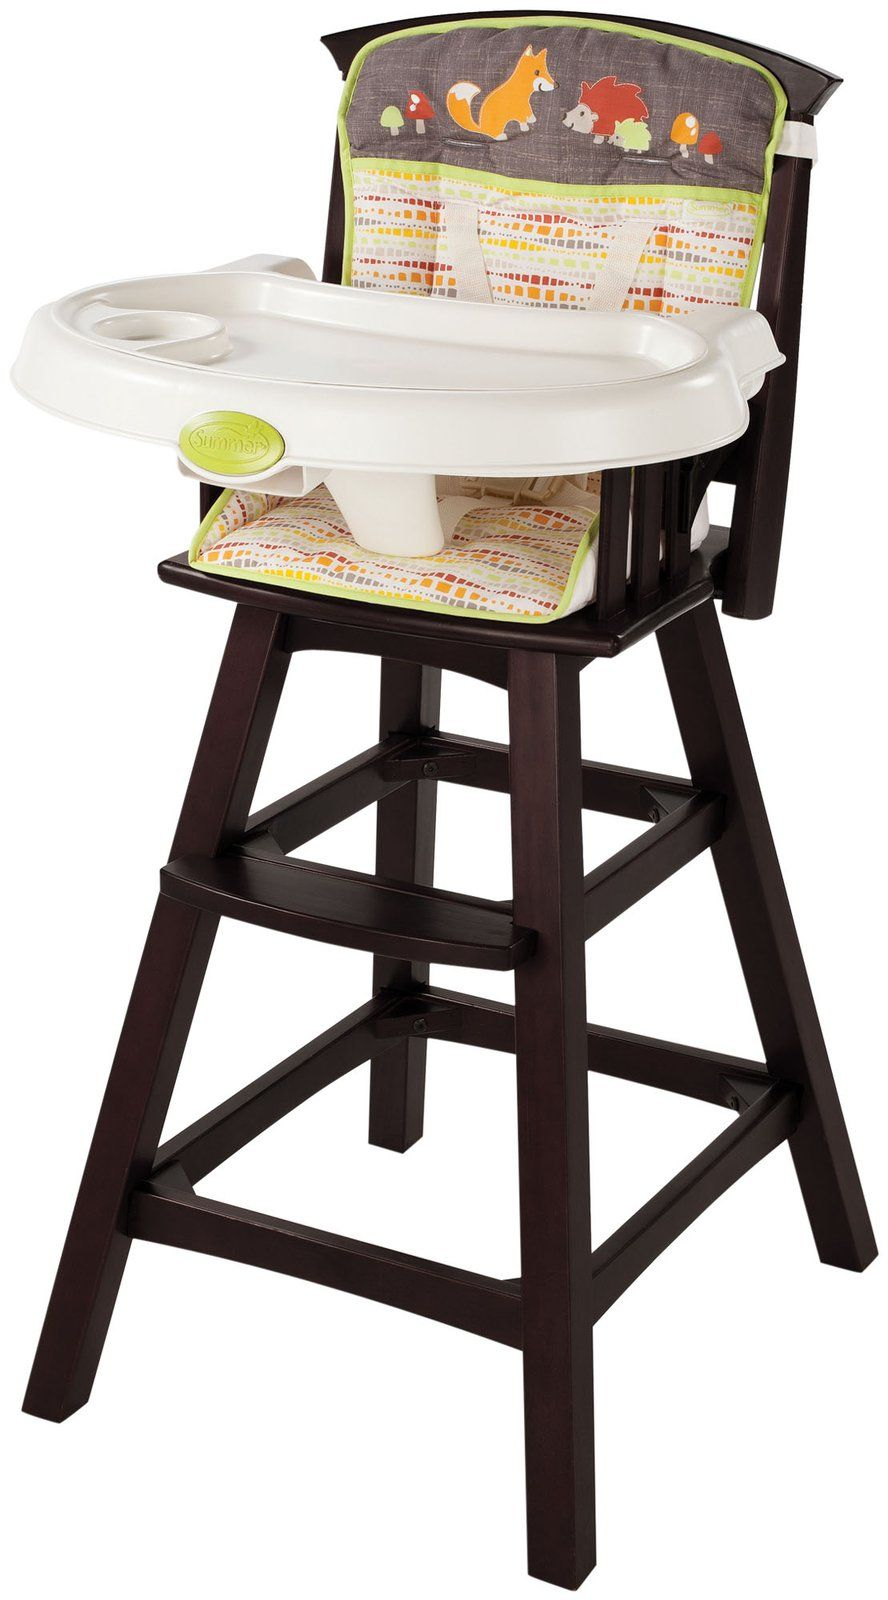 Graco high chair 4 in 1 summer infant classic comfort wood high chair  fox u friends  baby